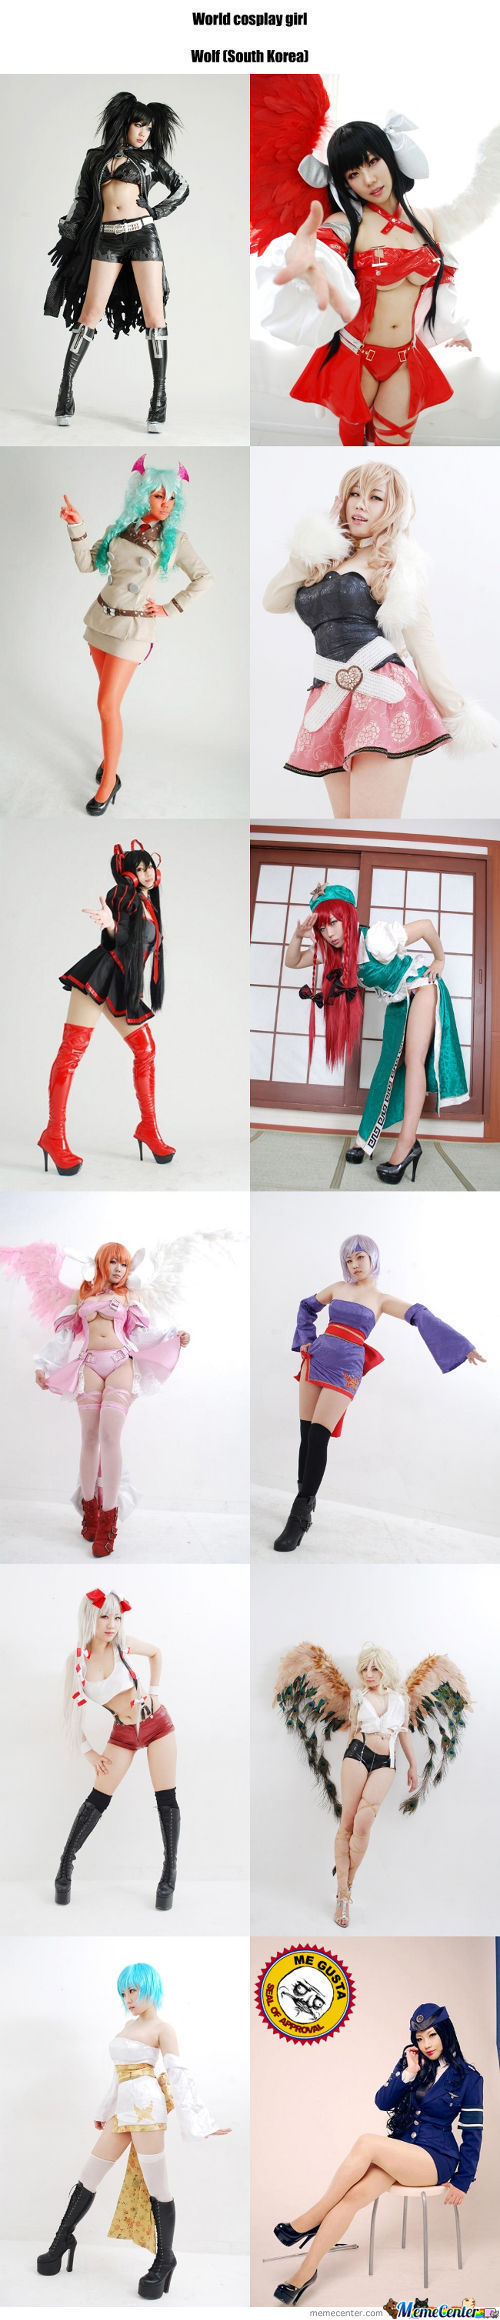 Cosplay Girl 10 : Wolf (South Korea)